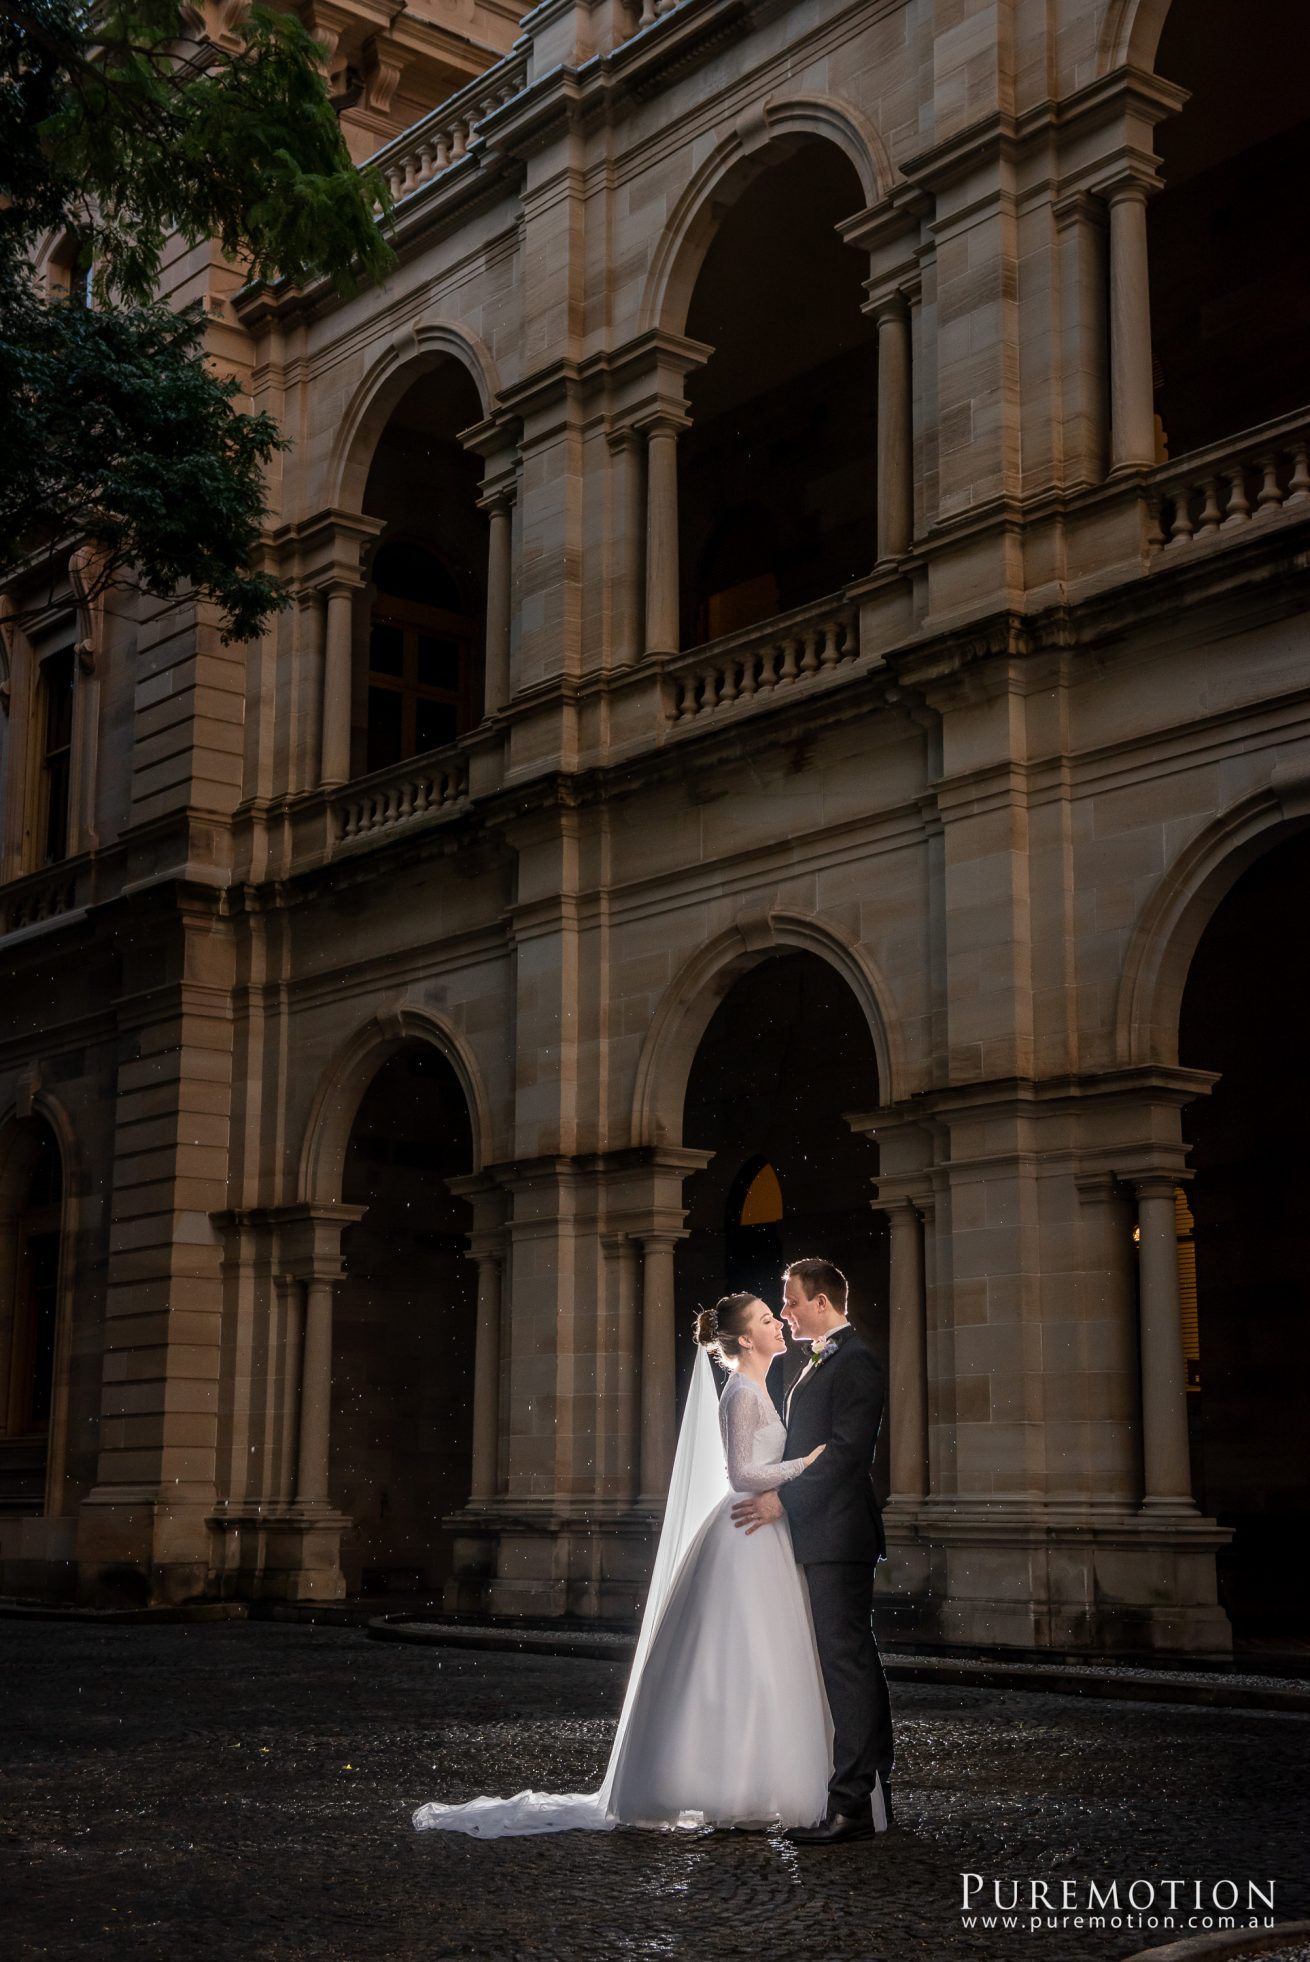 190517 Puremotion Wedding Photography Alex Huang Brisbane EmmaBen-0064